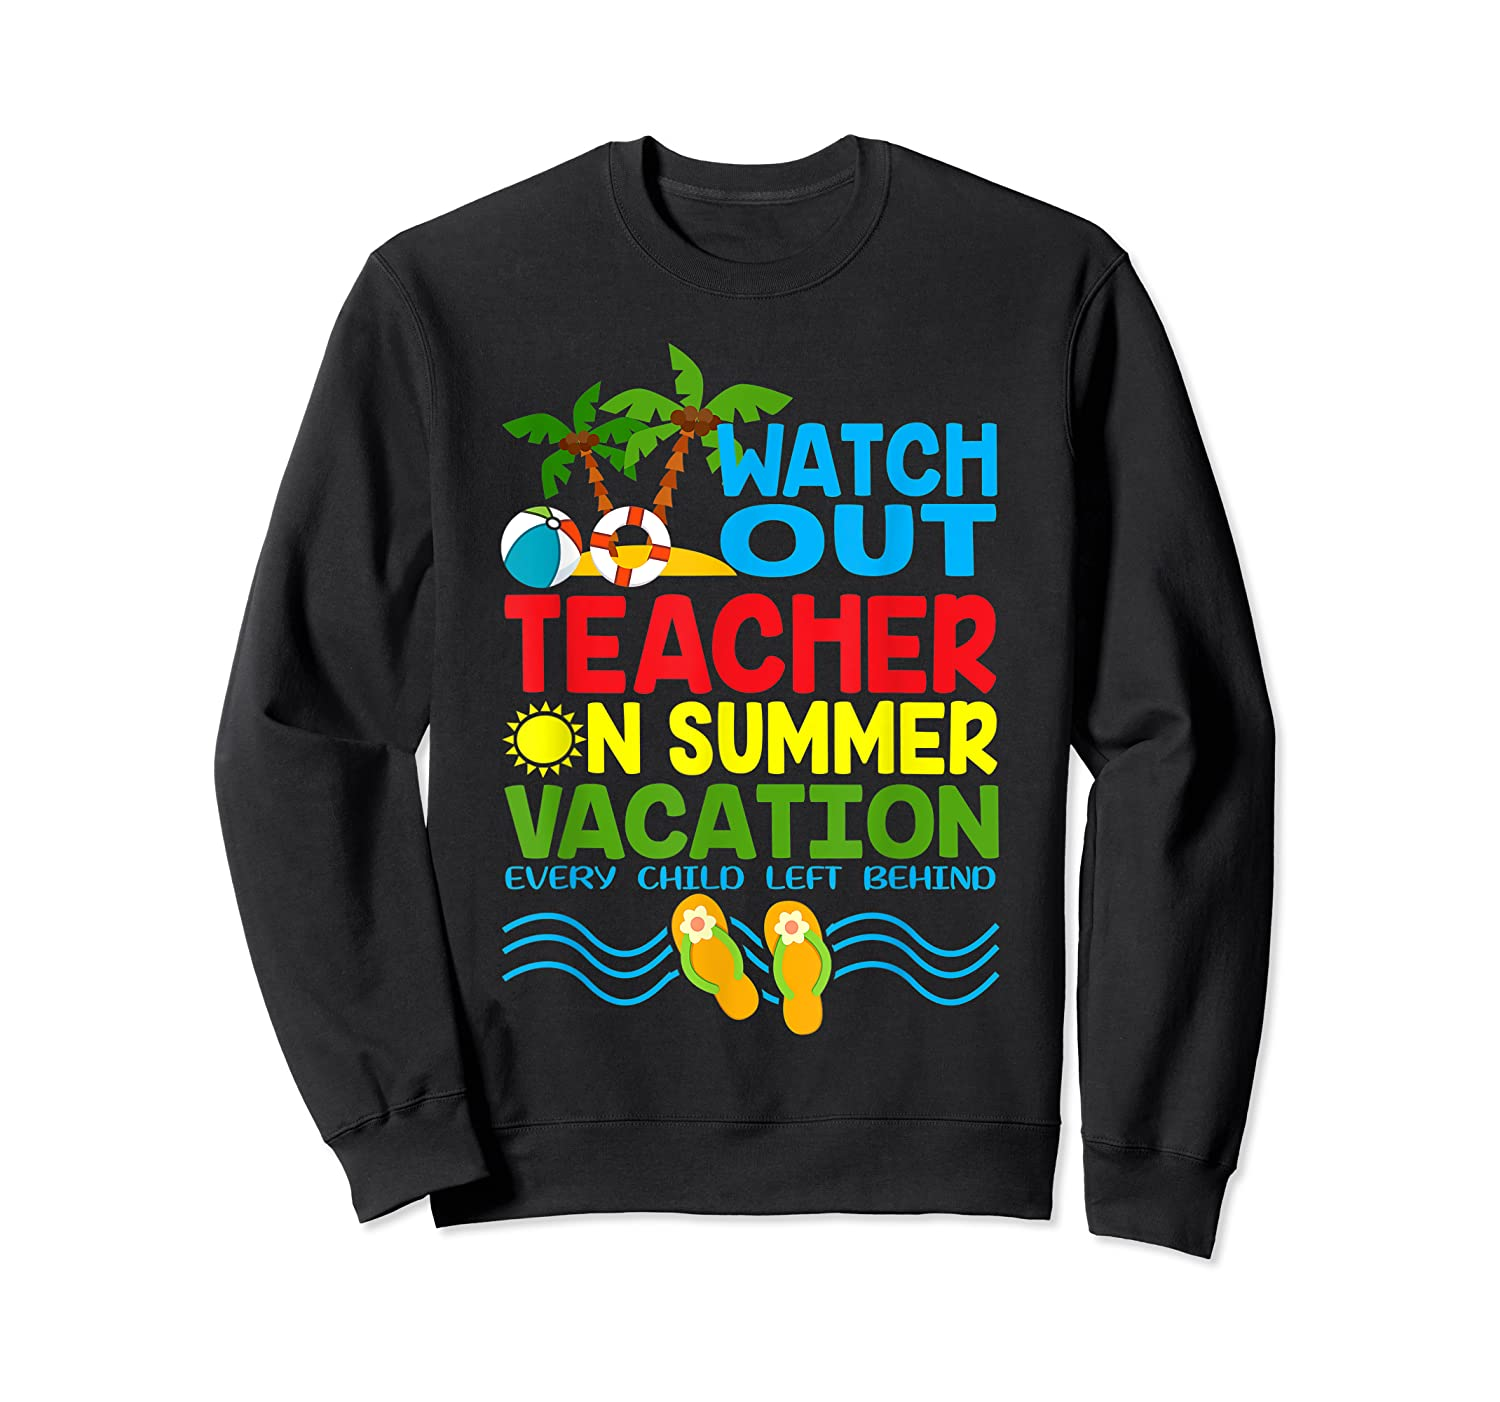 Watch Out Tea On Summer Vacation Every Child Left Behind Shirts Crewneck Sweater